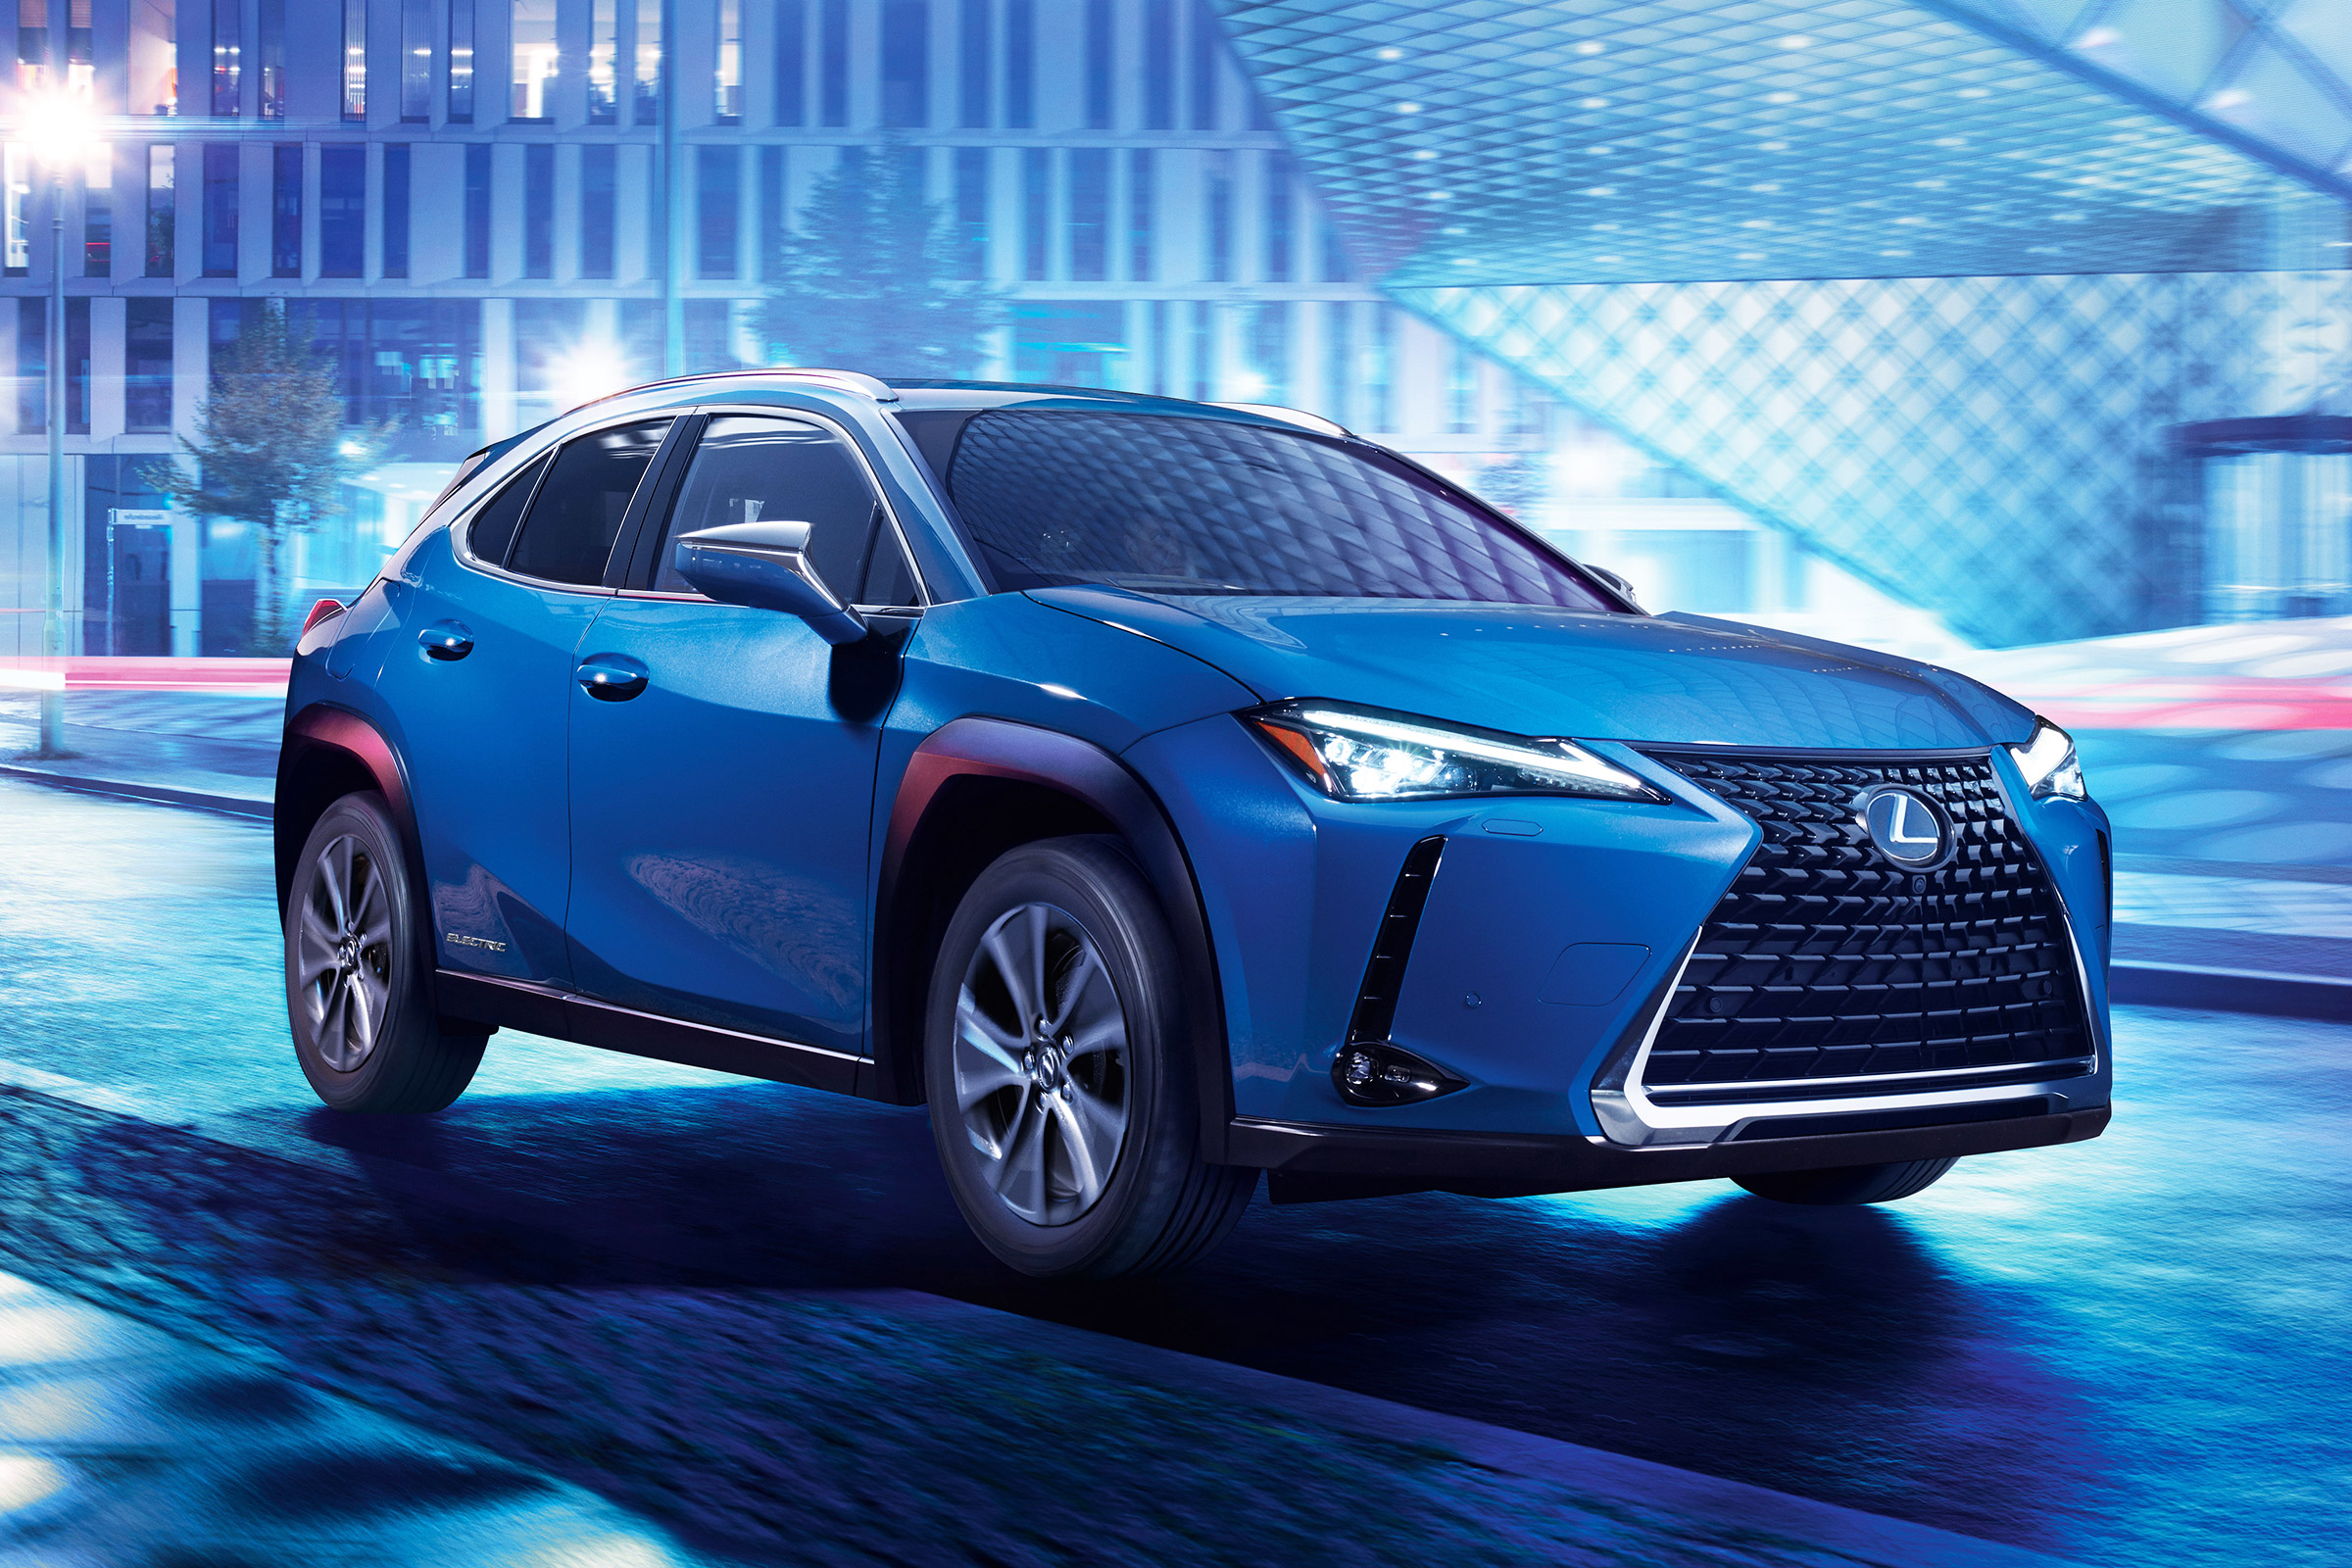 New 2021 Lexus Ux 300e Electric Suv On Sale Now With 196 Mile Range Auto Express